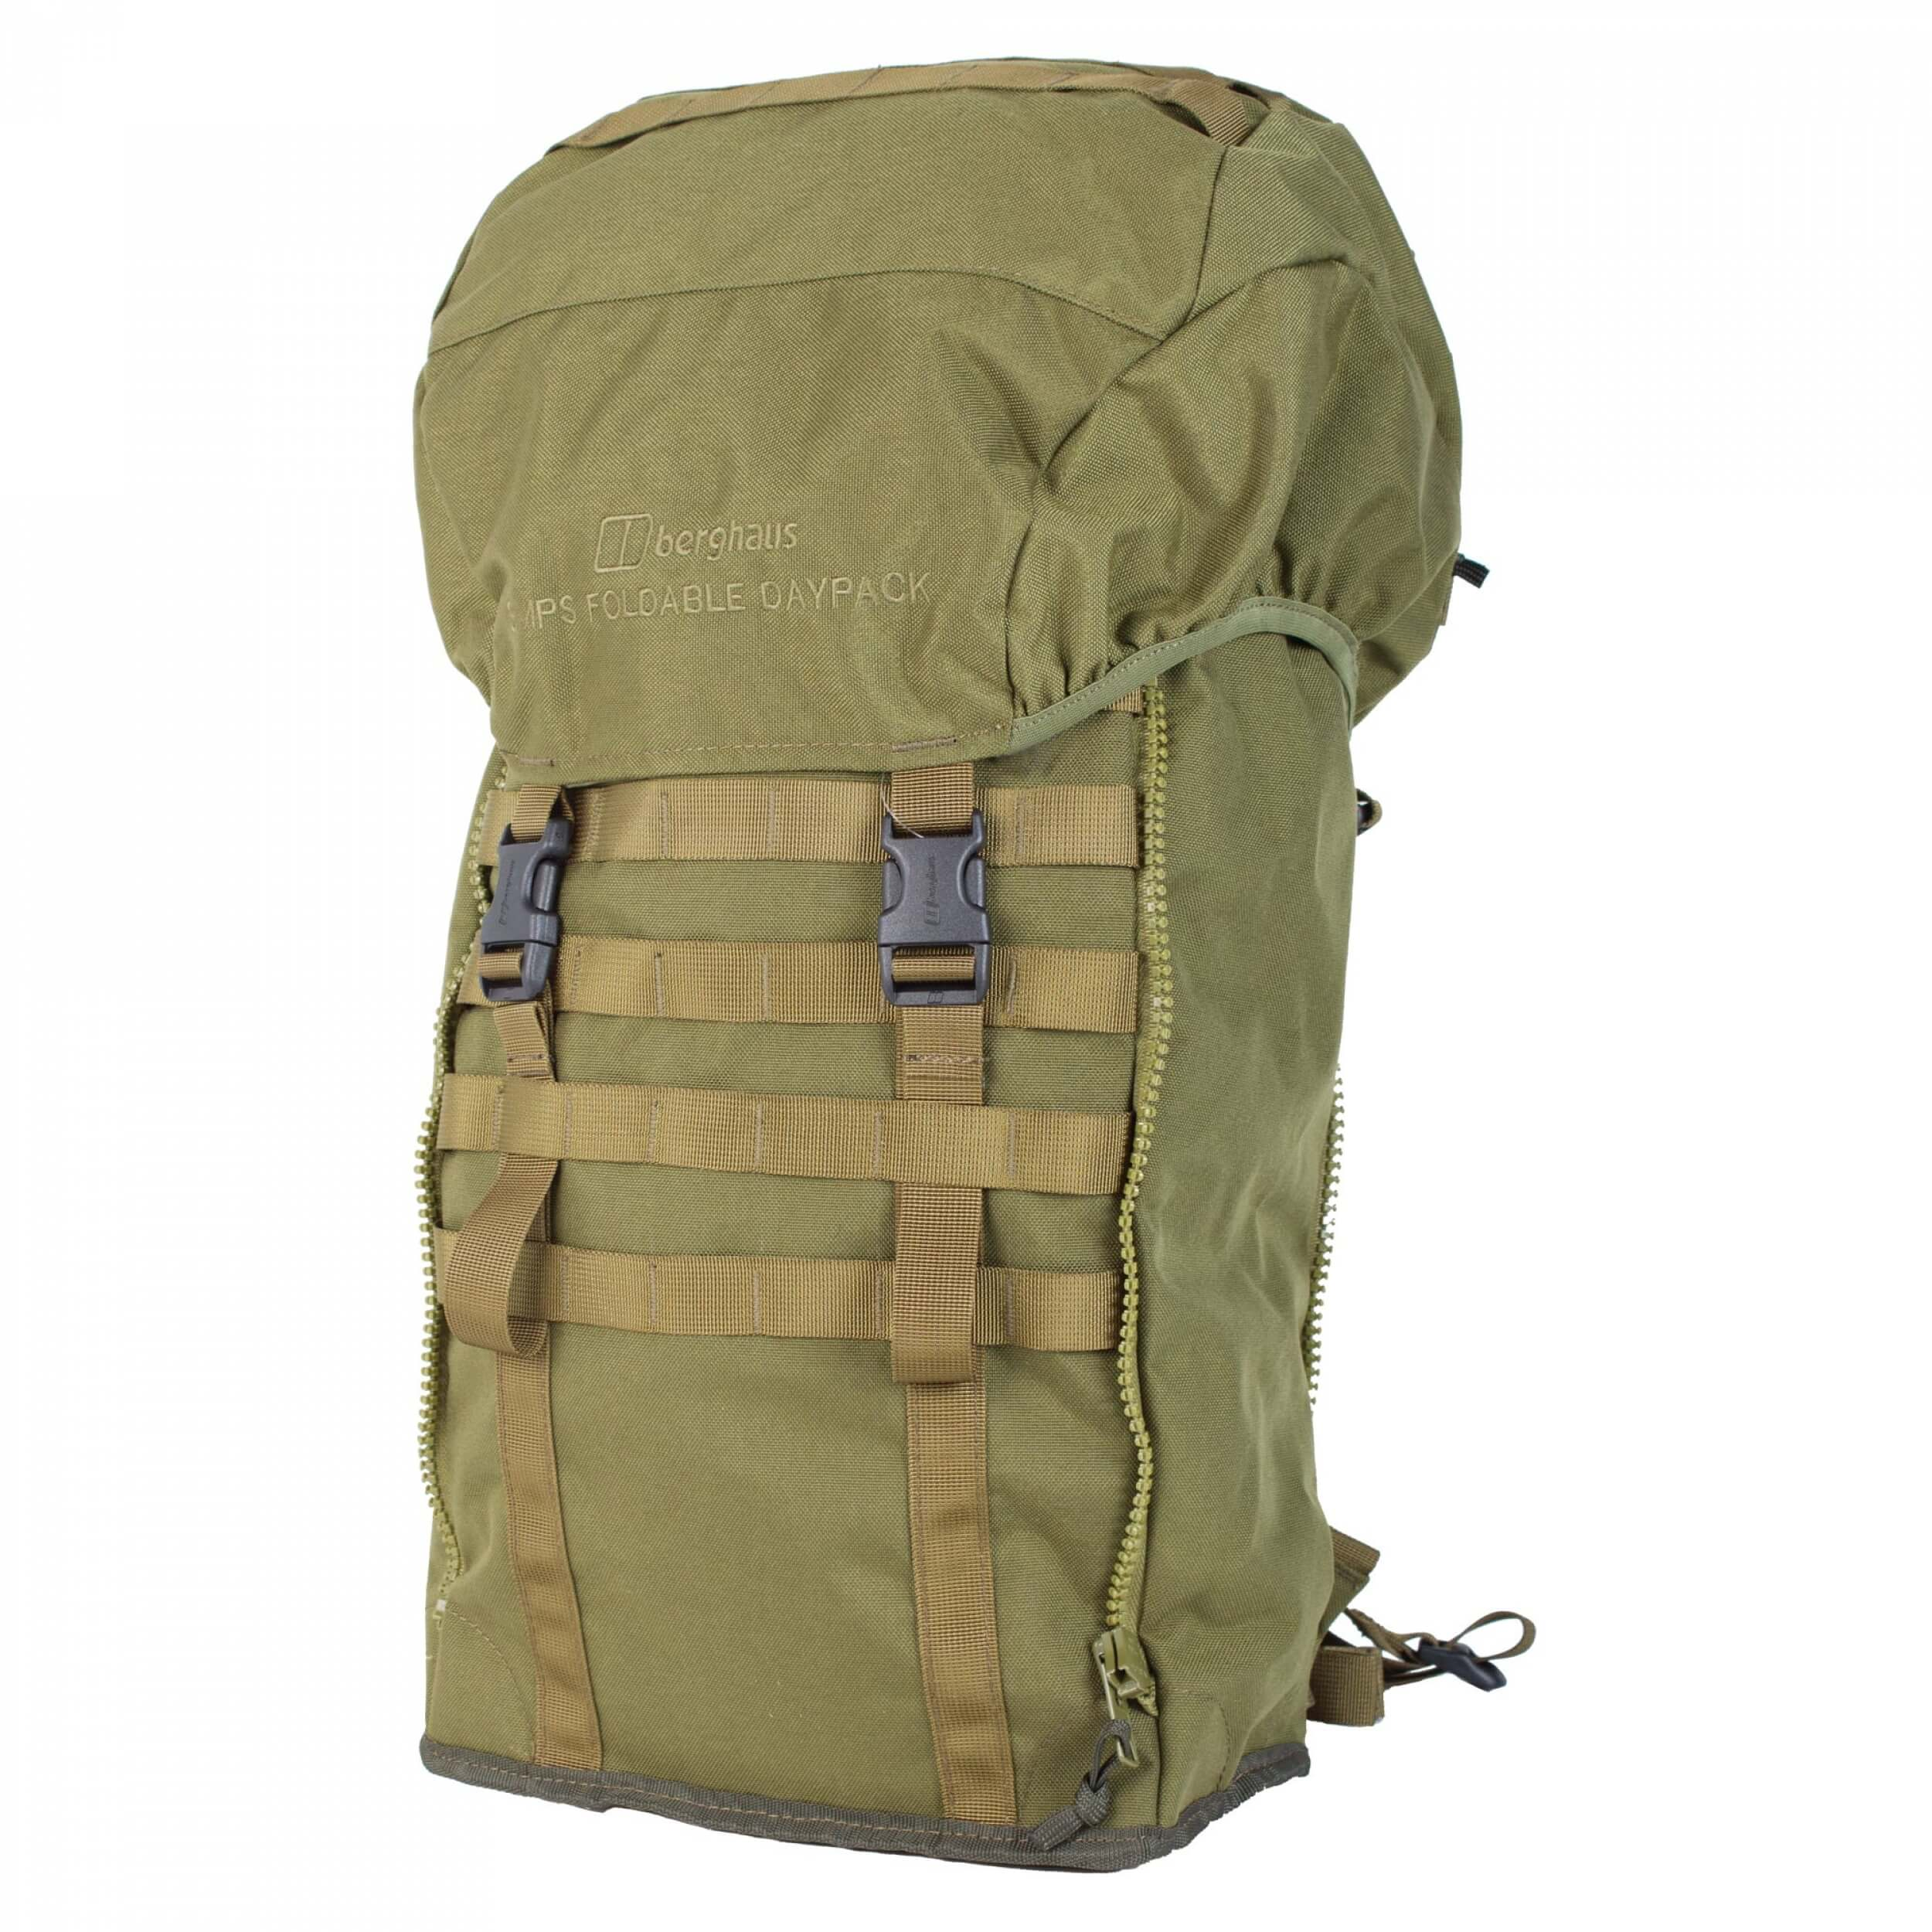 Berghaus SMPS Foldable Daypack Oliv